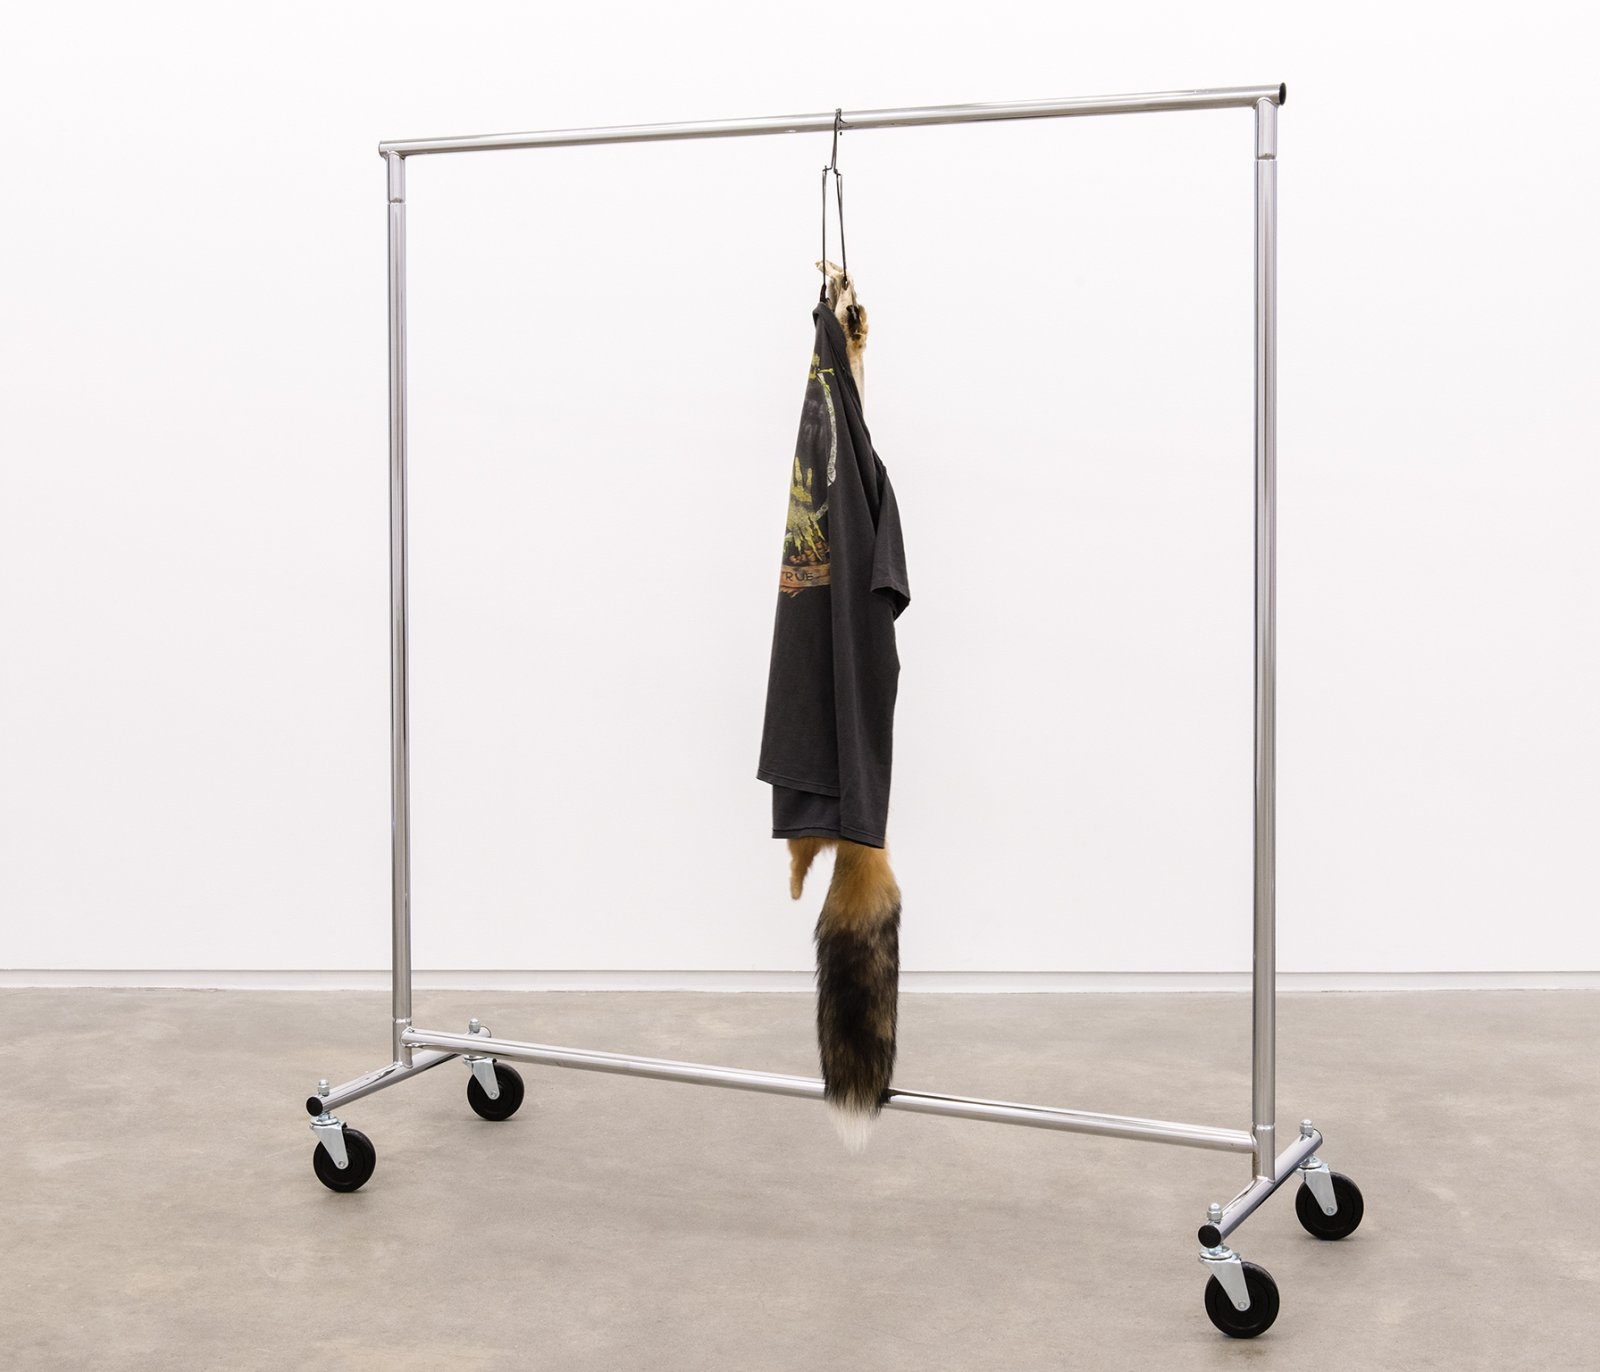 Duane Linklater, My brother in law, my sister, 2014, fox fur, garment rack, hangers, t-shirt, 66 x 60 x 20 in. (168 x 151 x 52 cm) by Duane Linklater